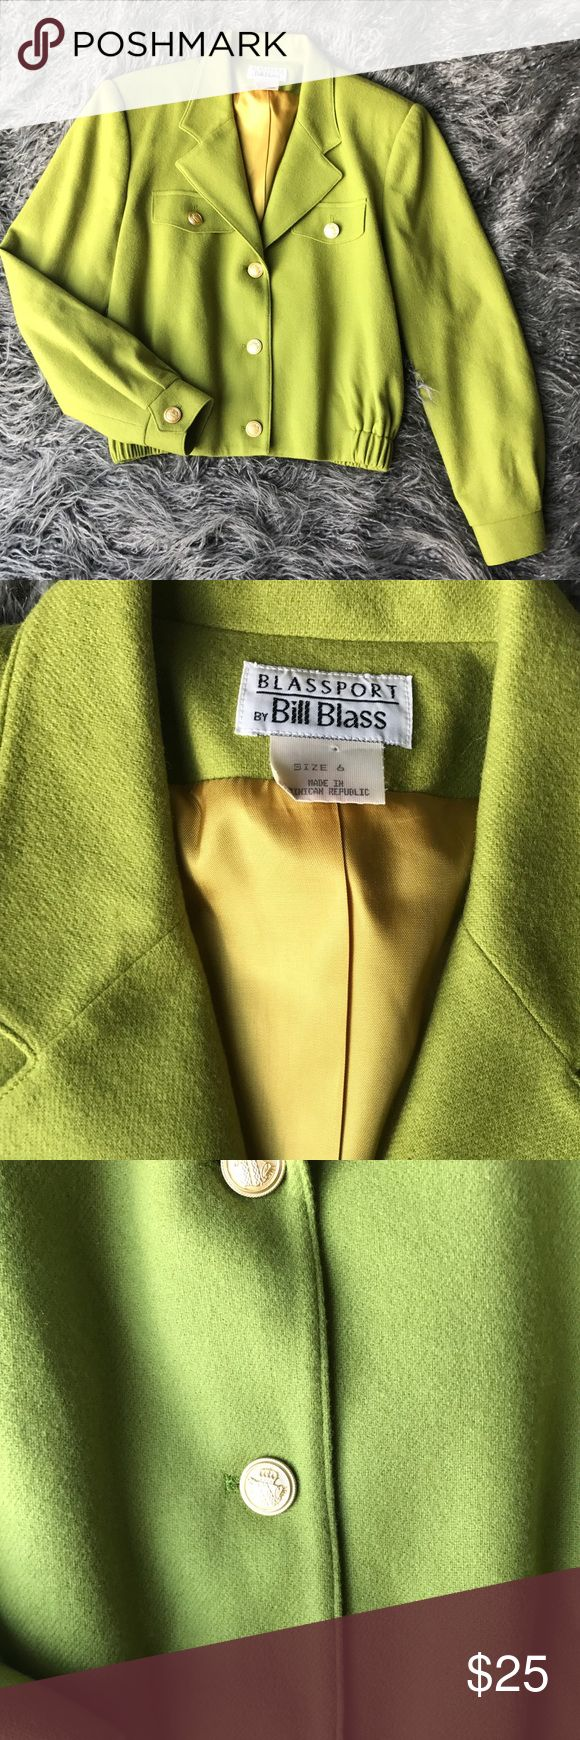 Vintage Bill Blass Wool Blazer w Gold Buttons Awesome Vintage Bill Blass Wool Blazer w Gold Buttons  Size 6 Great Condition  Chartreuse/Yellow/Green in Color Bill Blass Jackets & Coats Blazers